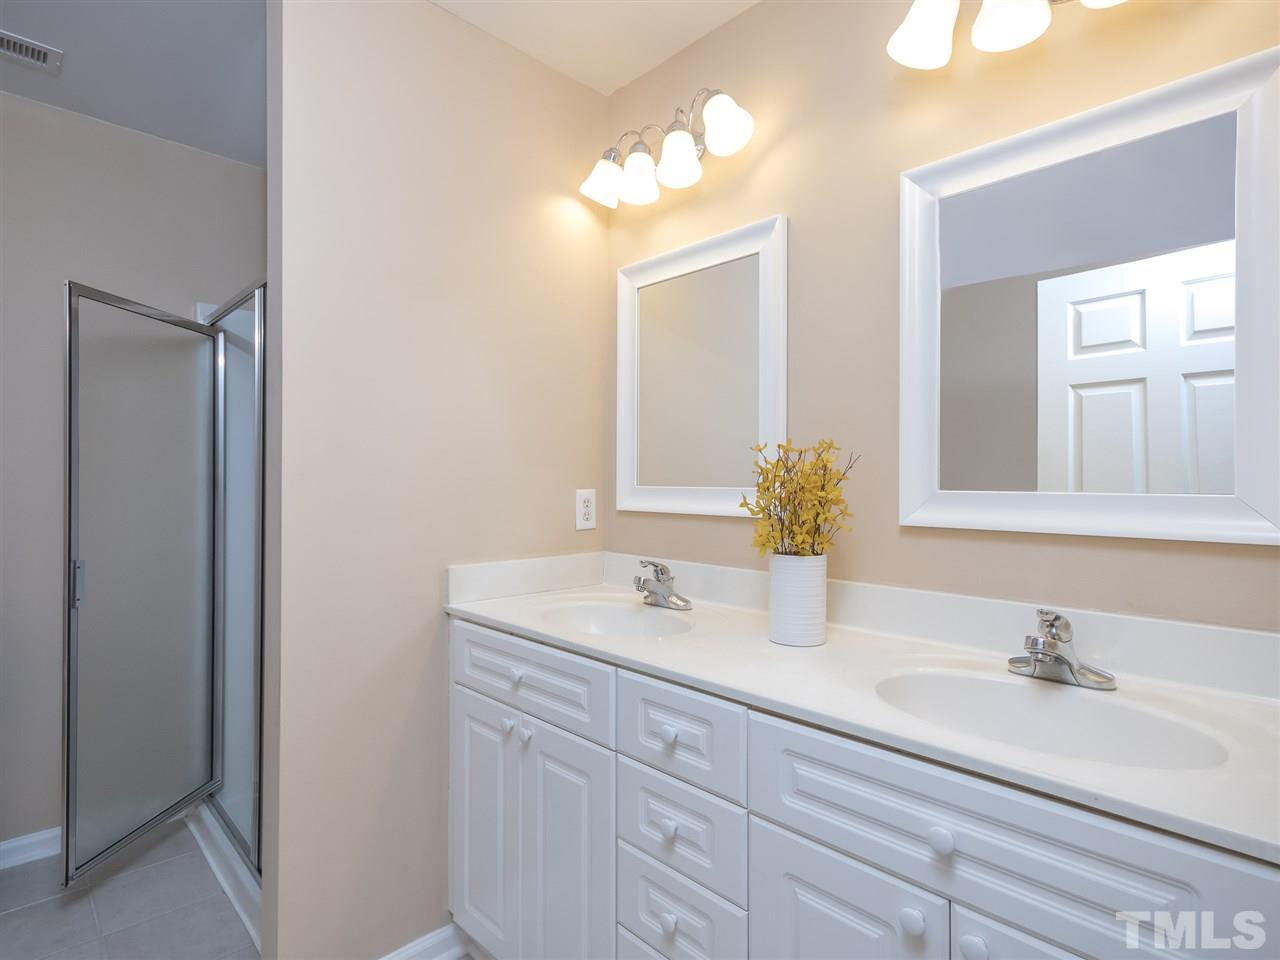 Lovely white cabinets, dual sinks, separate shower and tub, tile floor!